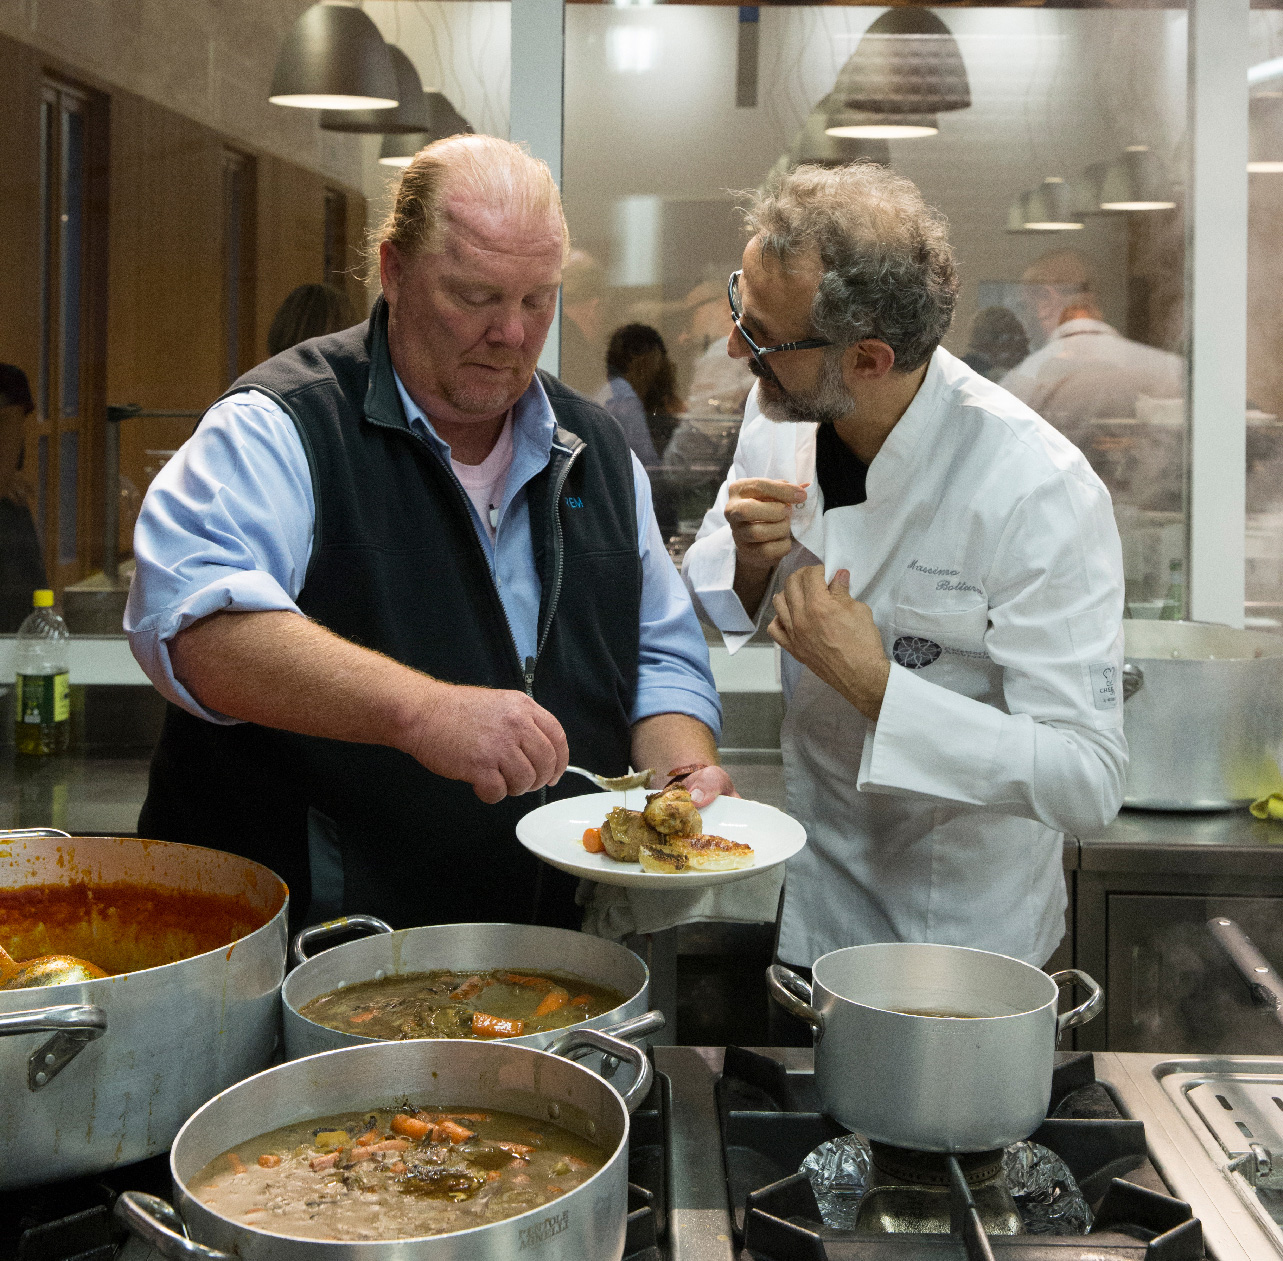 Mario Batali and Massimo Bottura in Bread is Gold